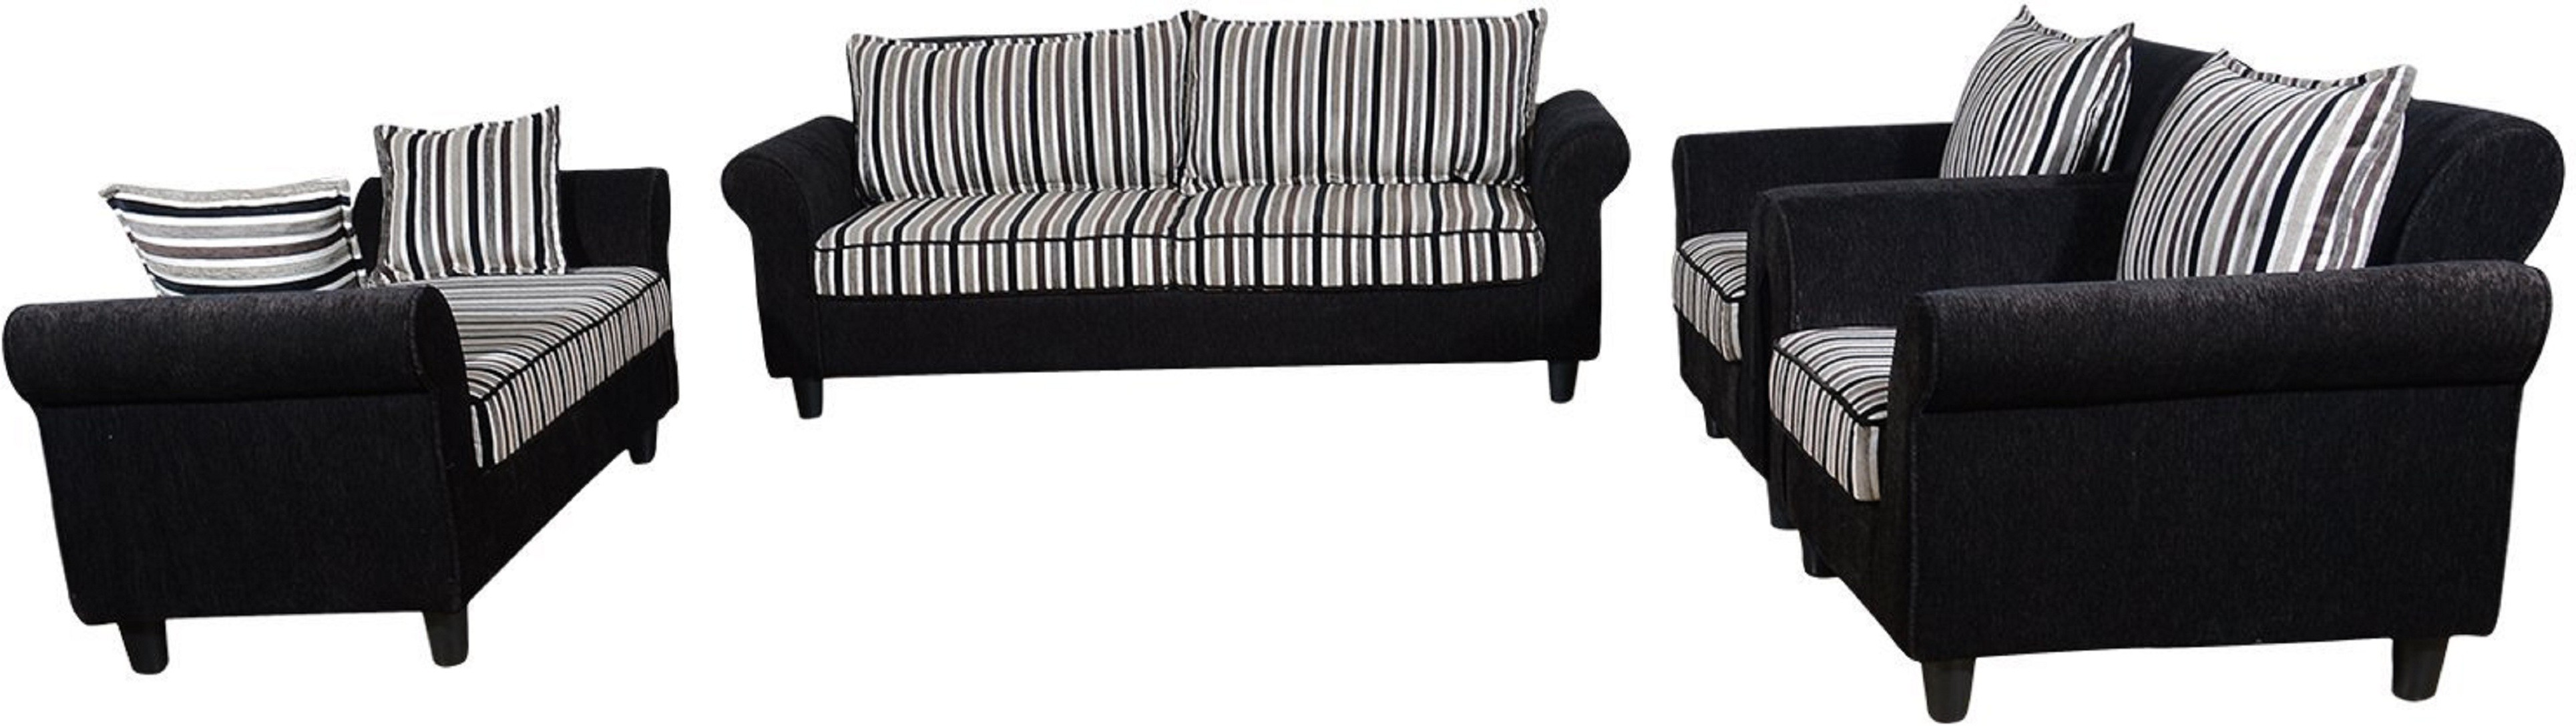 View RAWAT Nano 2 Solid Wood 3 + 2 + 1 + 1 Multicolour Sofa Set(Configuration - L) Furniture (RAWAT)